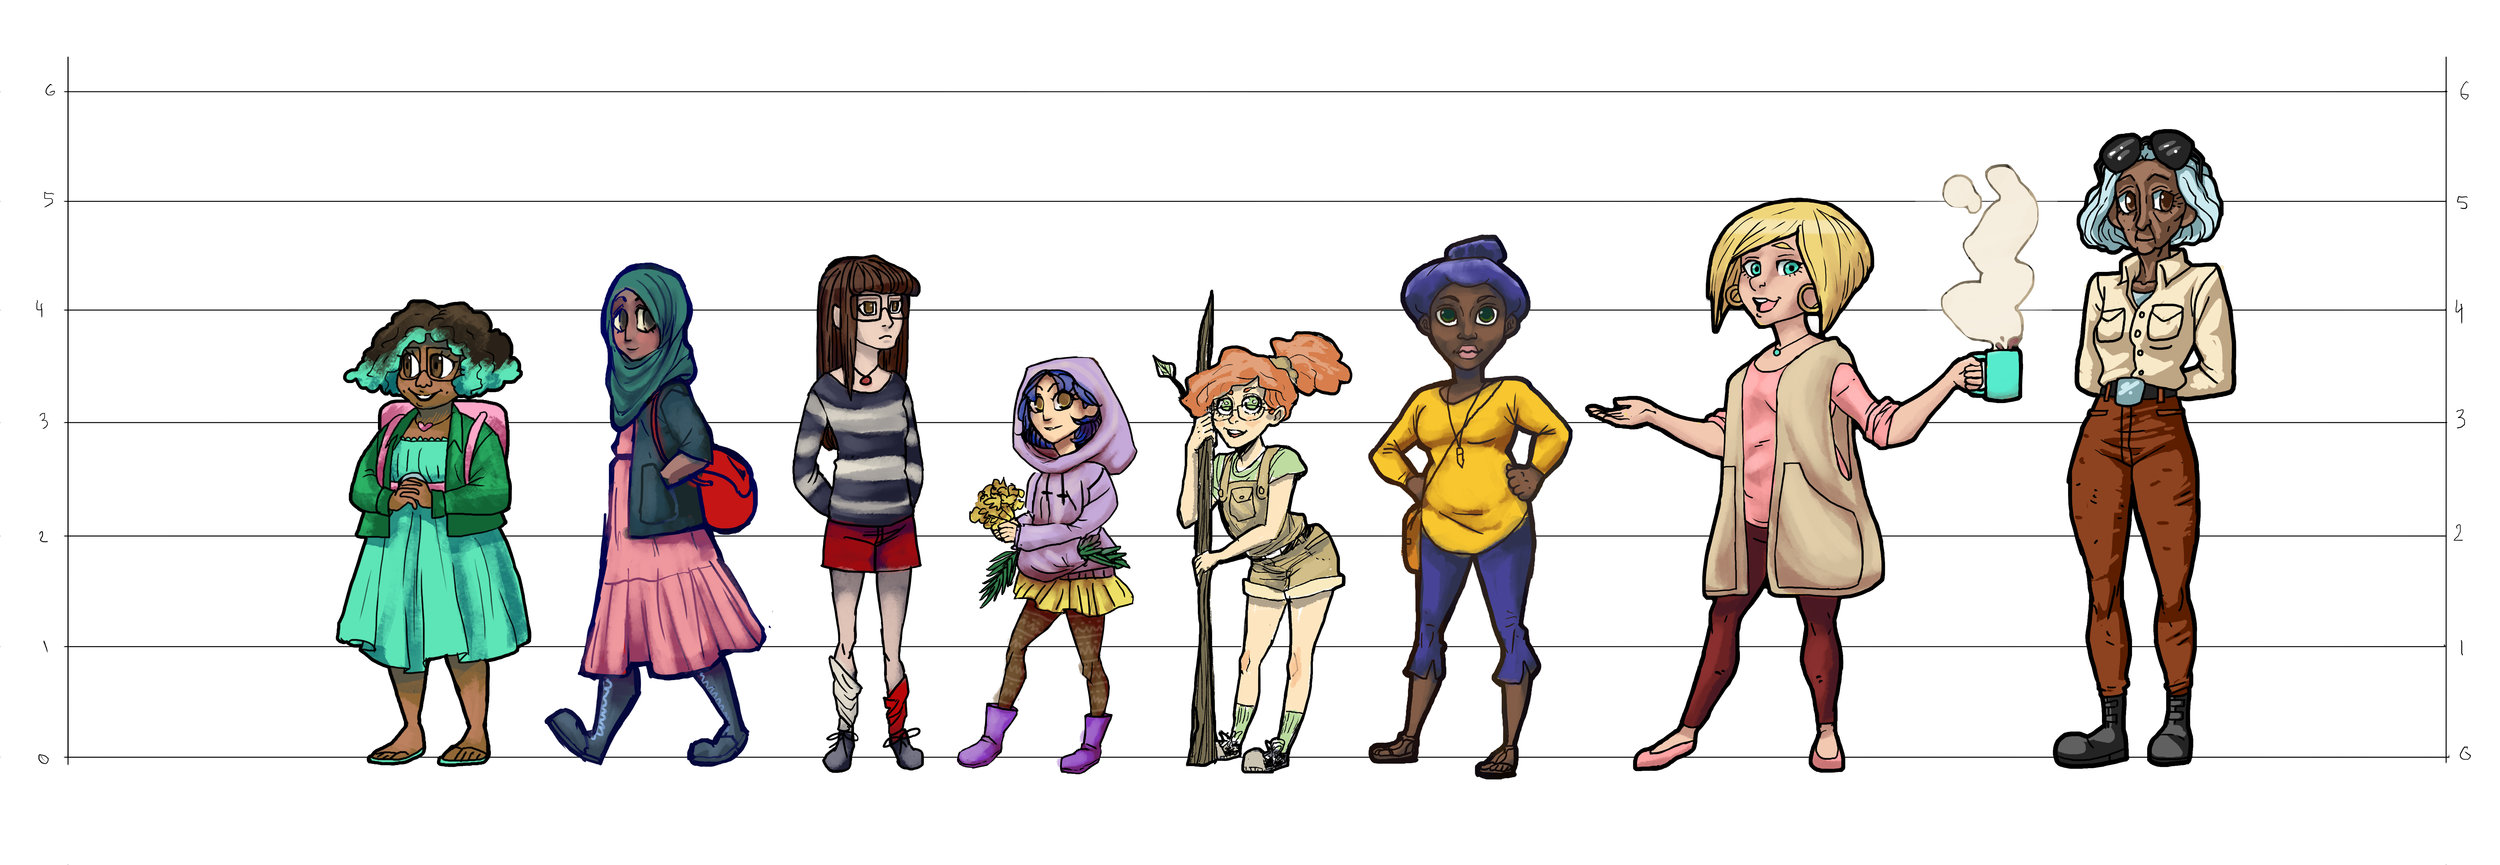 CharacterConcepts_LineUp_Females_v2_JessicaGreving.jpg